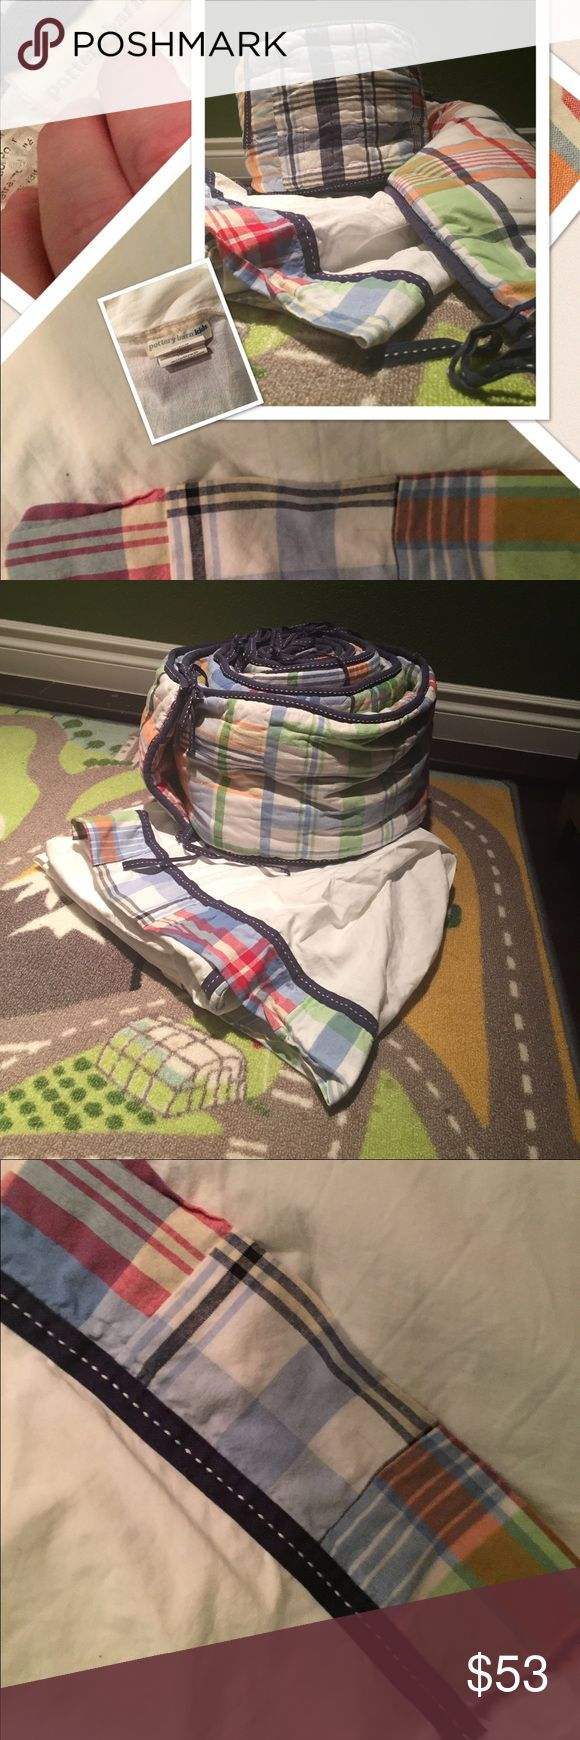 Pottery Barn Kids Madras crib bumper and skirt Madras crib skirt and bumper Other